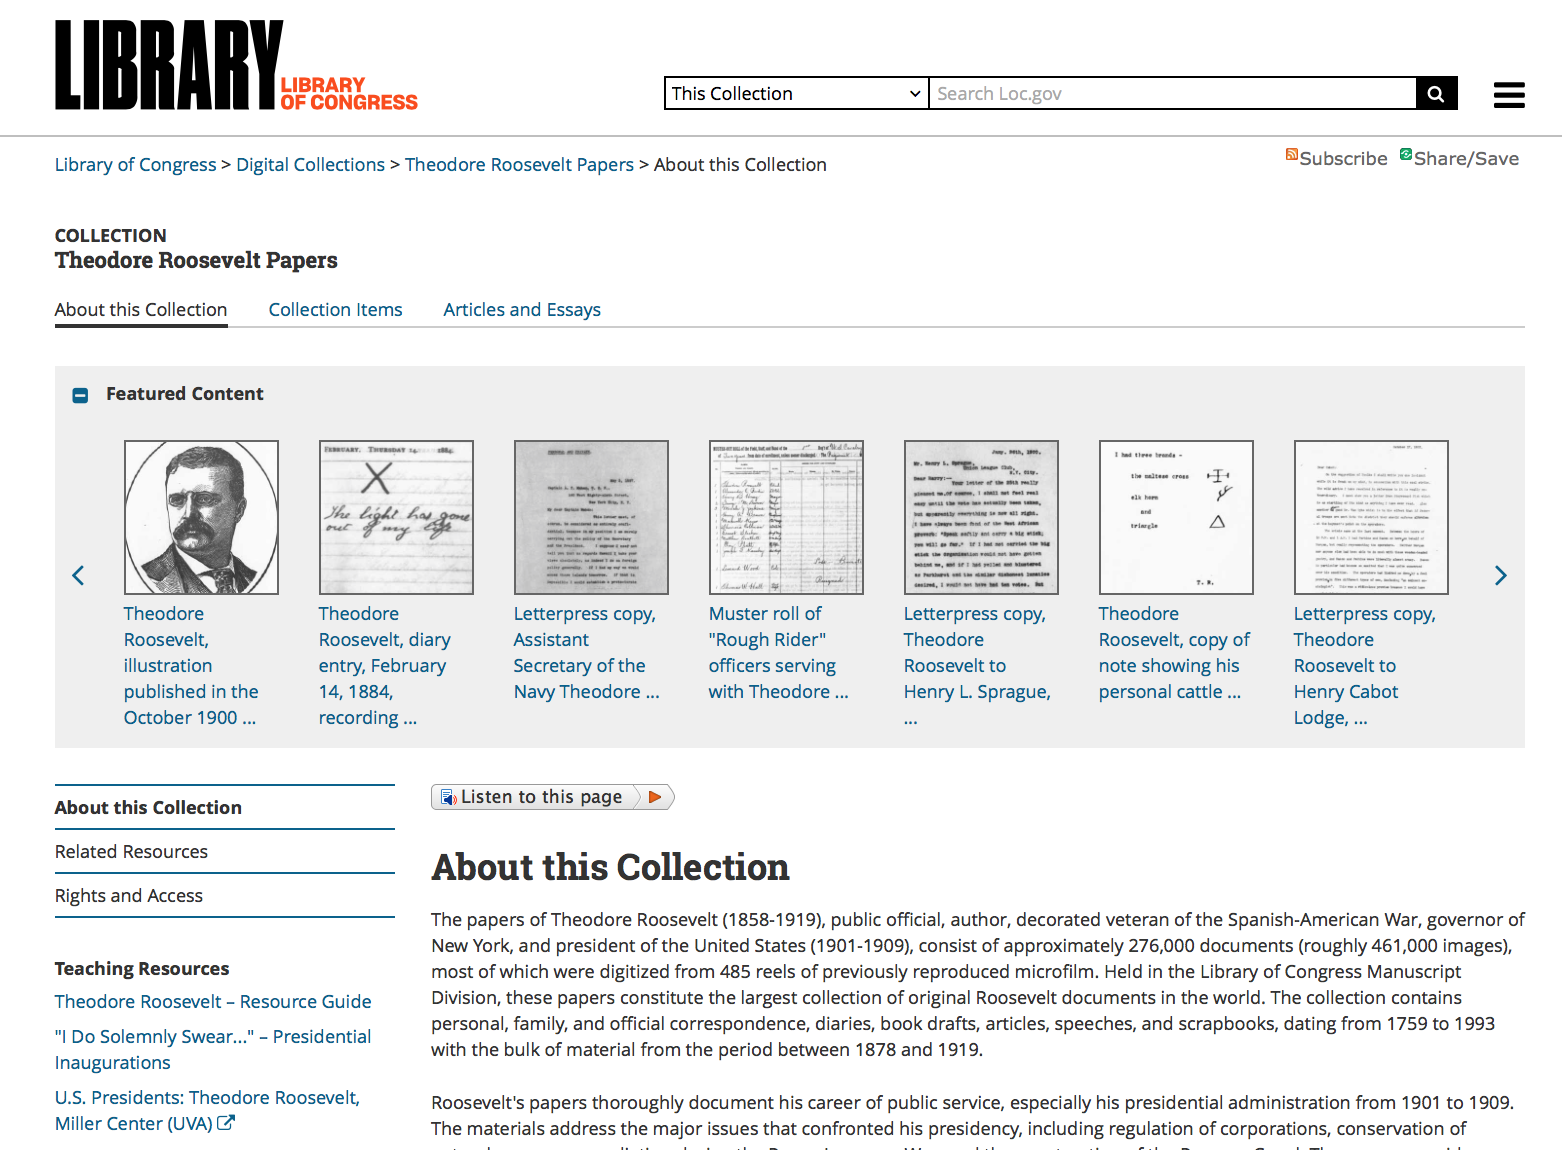 Library of Congress site for Theodore Roosevelt's papers